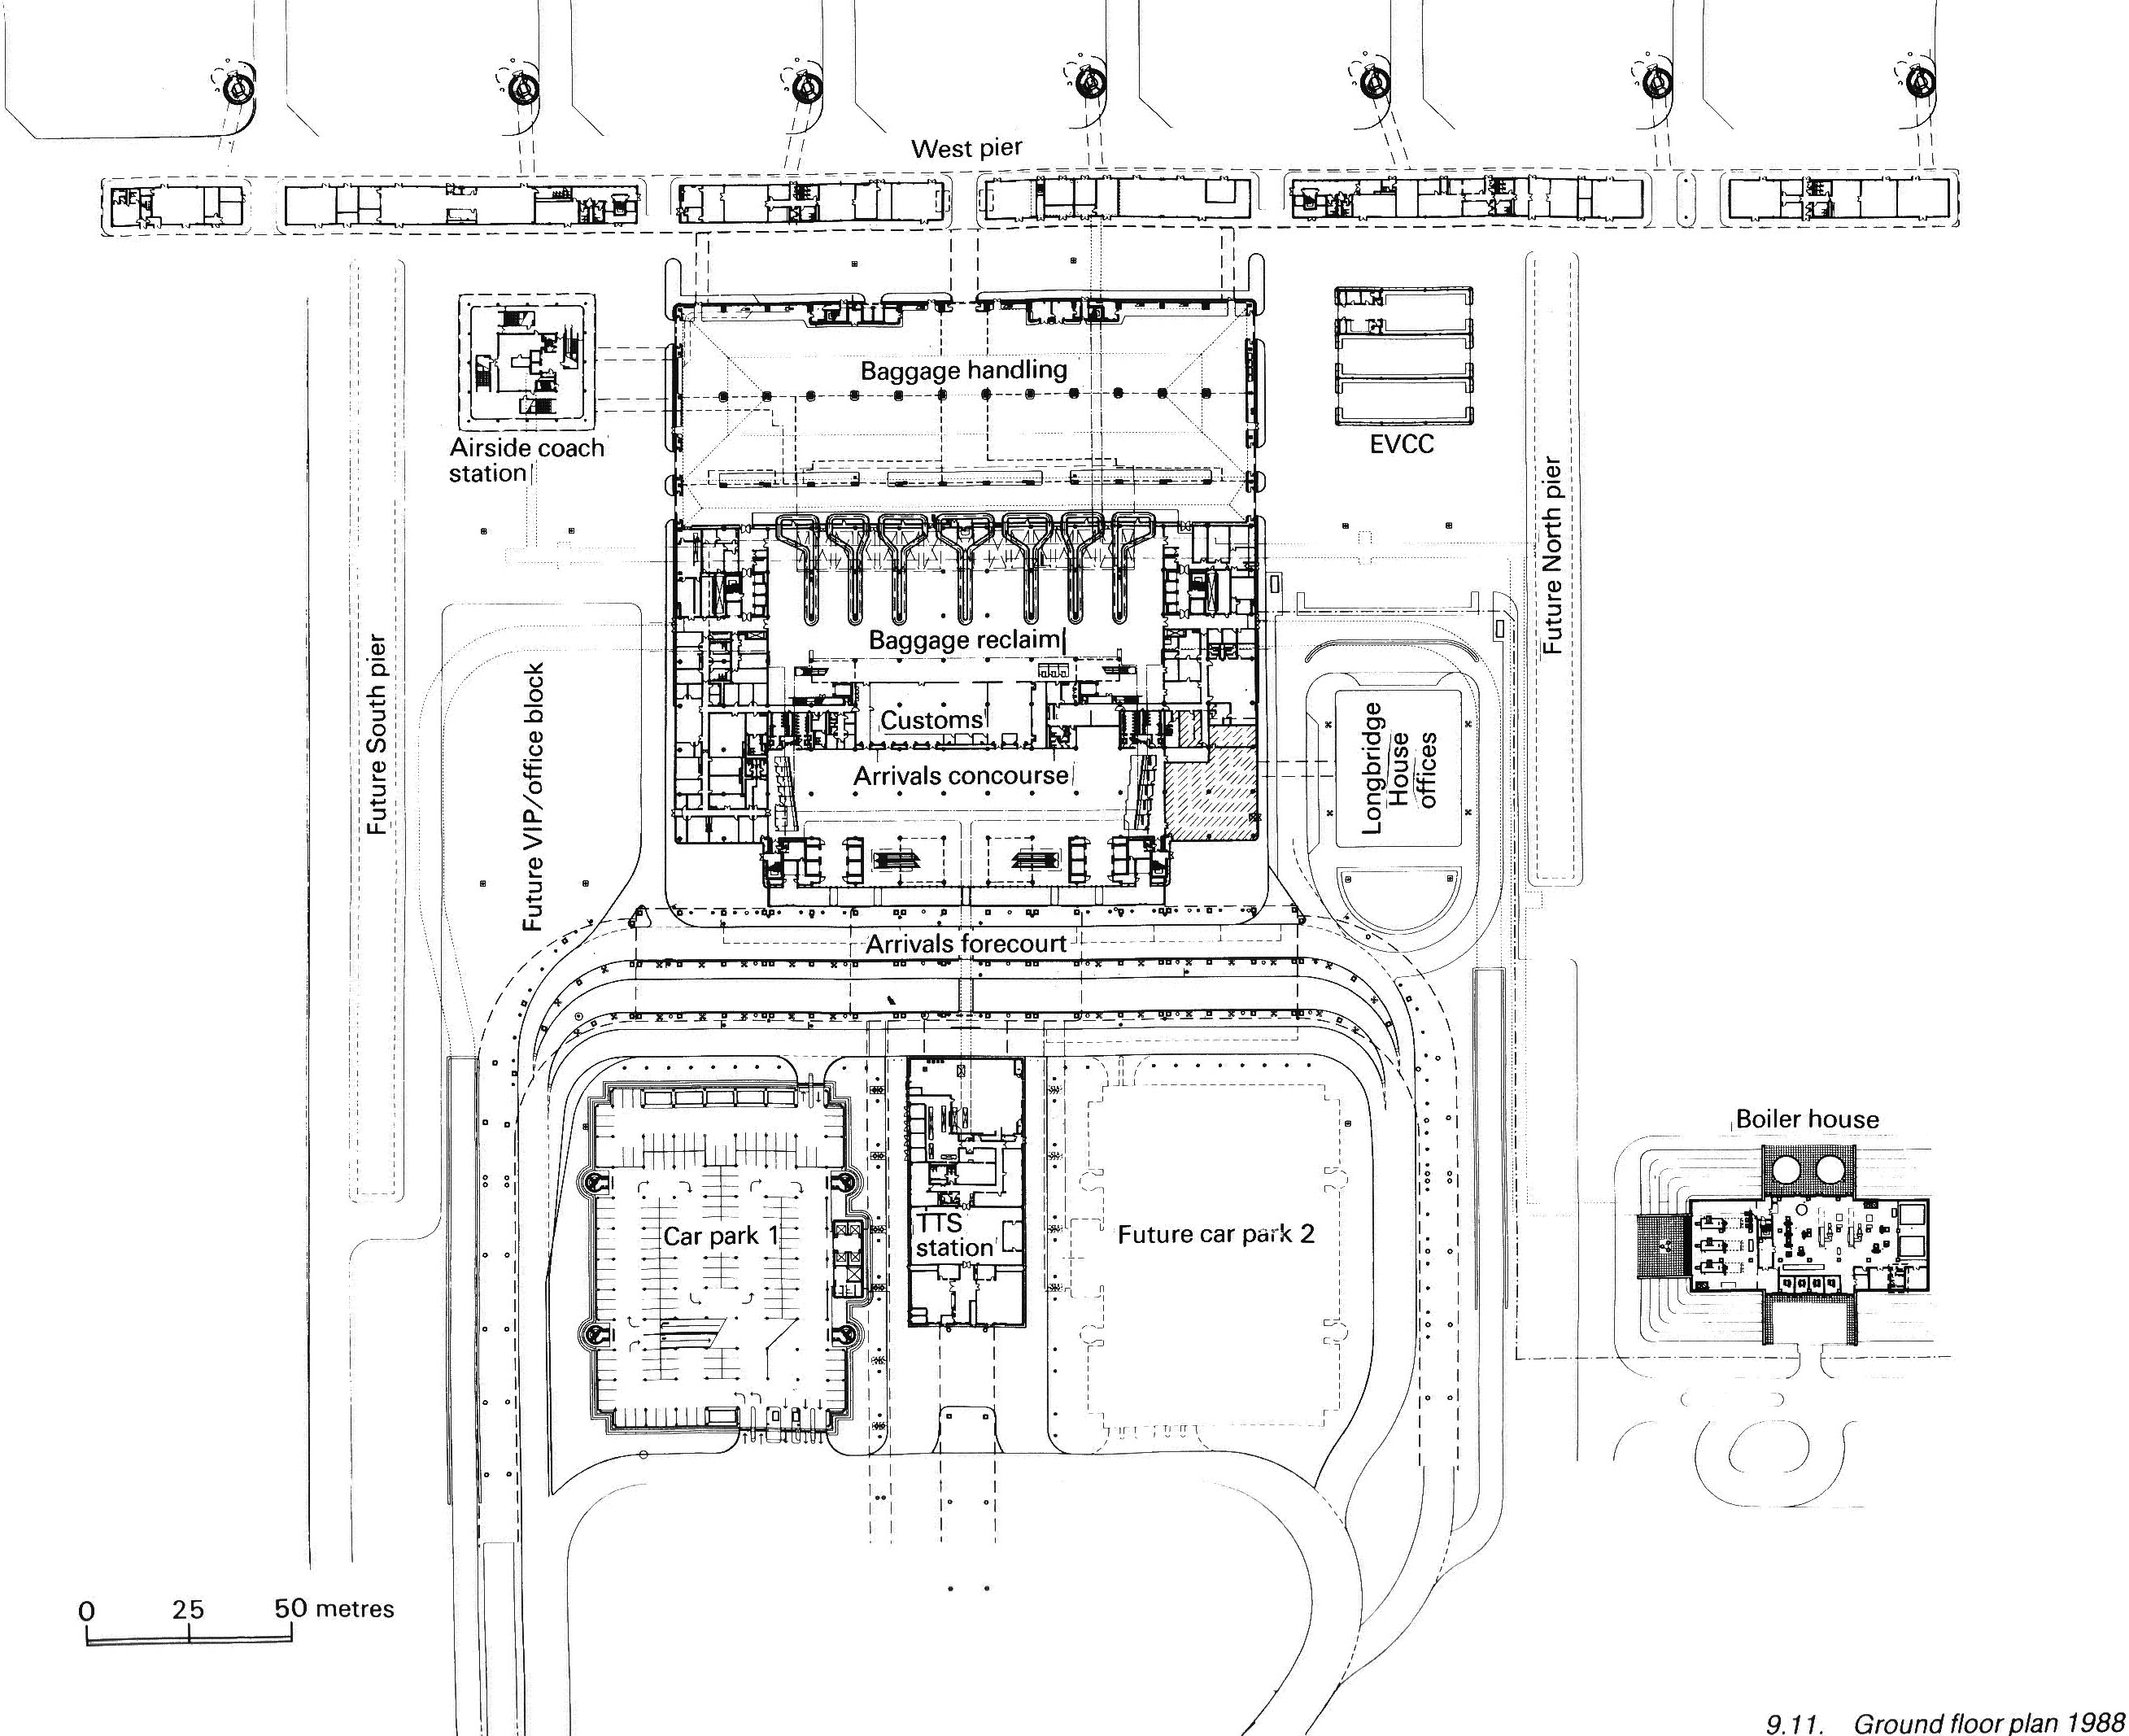 Existing International Airport Layouts T O N Y H W I J A Y A